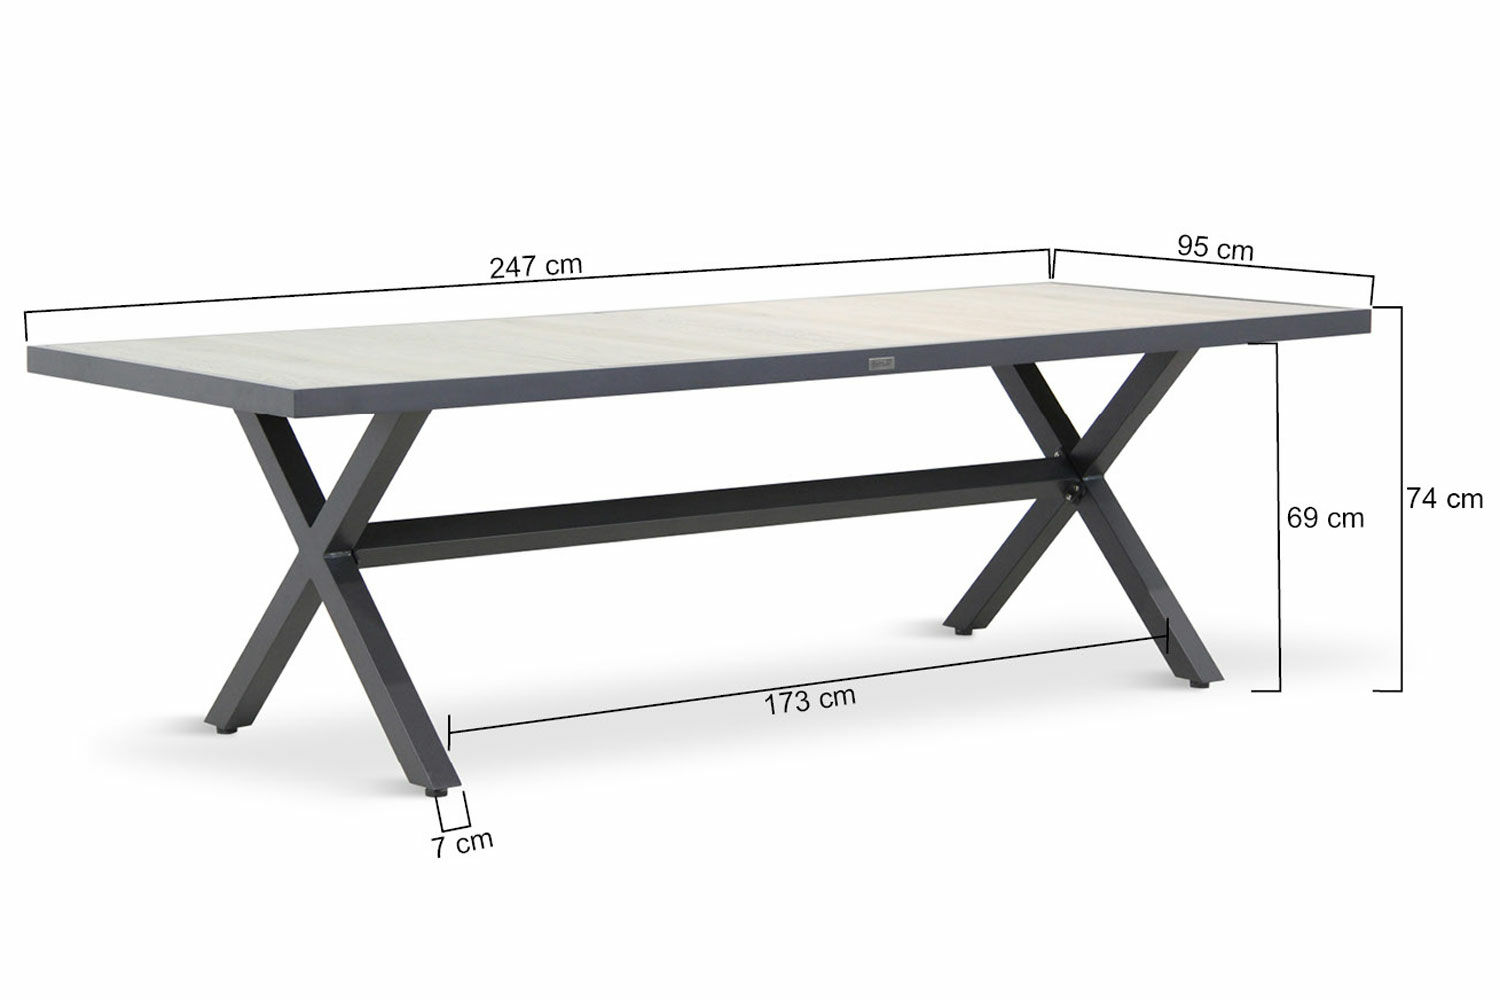 Phenomenal Hartman Canterbury Dining Tuintafel 247 X 96 Cm Gmtry Best Dining Table And Chair Ideas Images Gmtryco